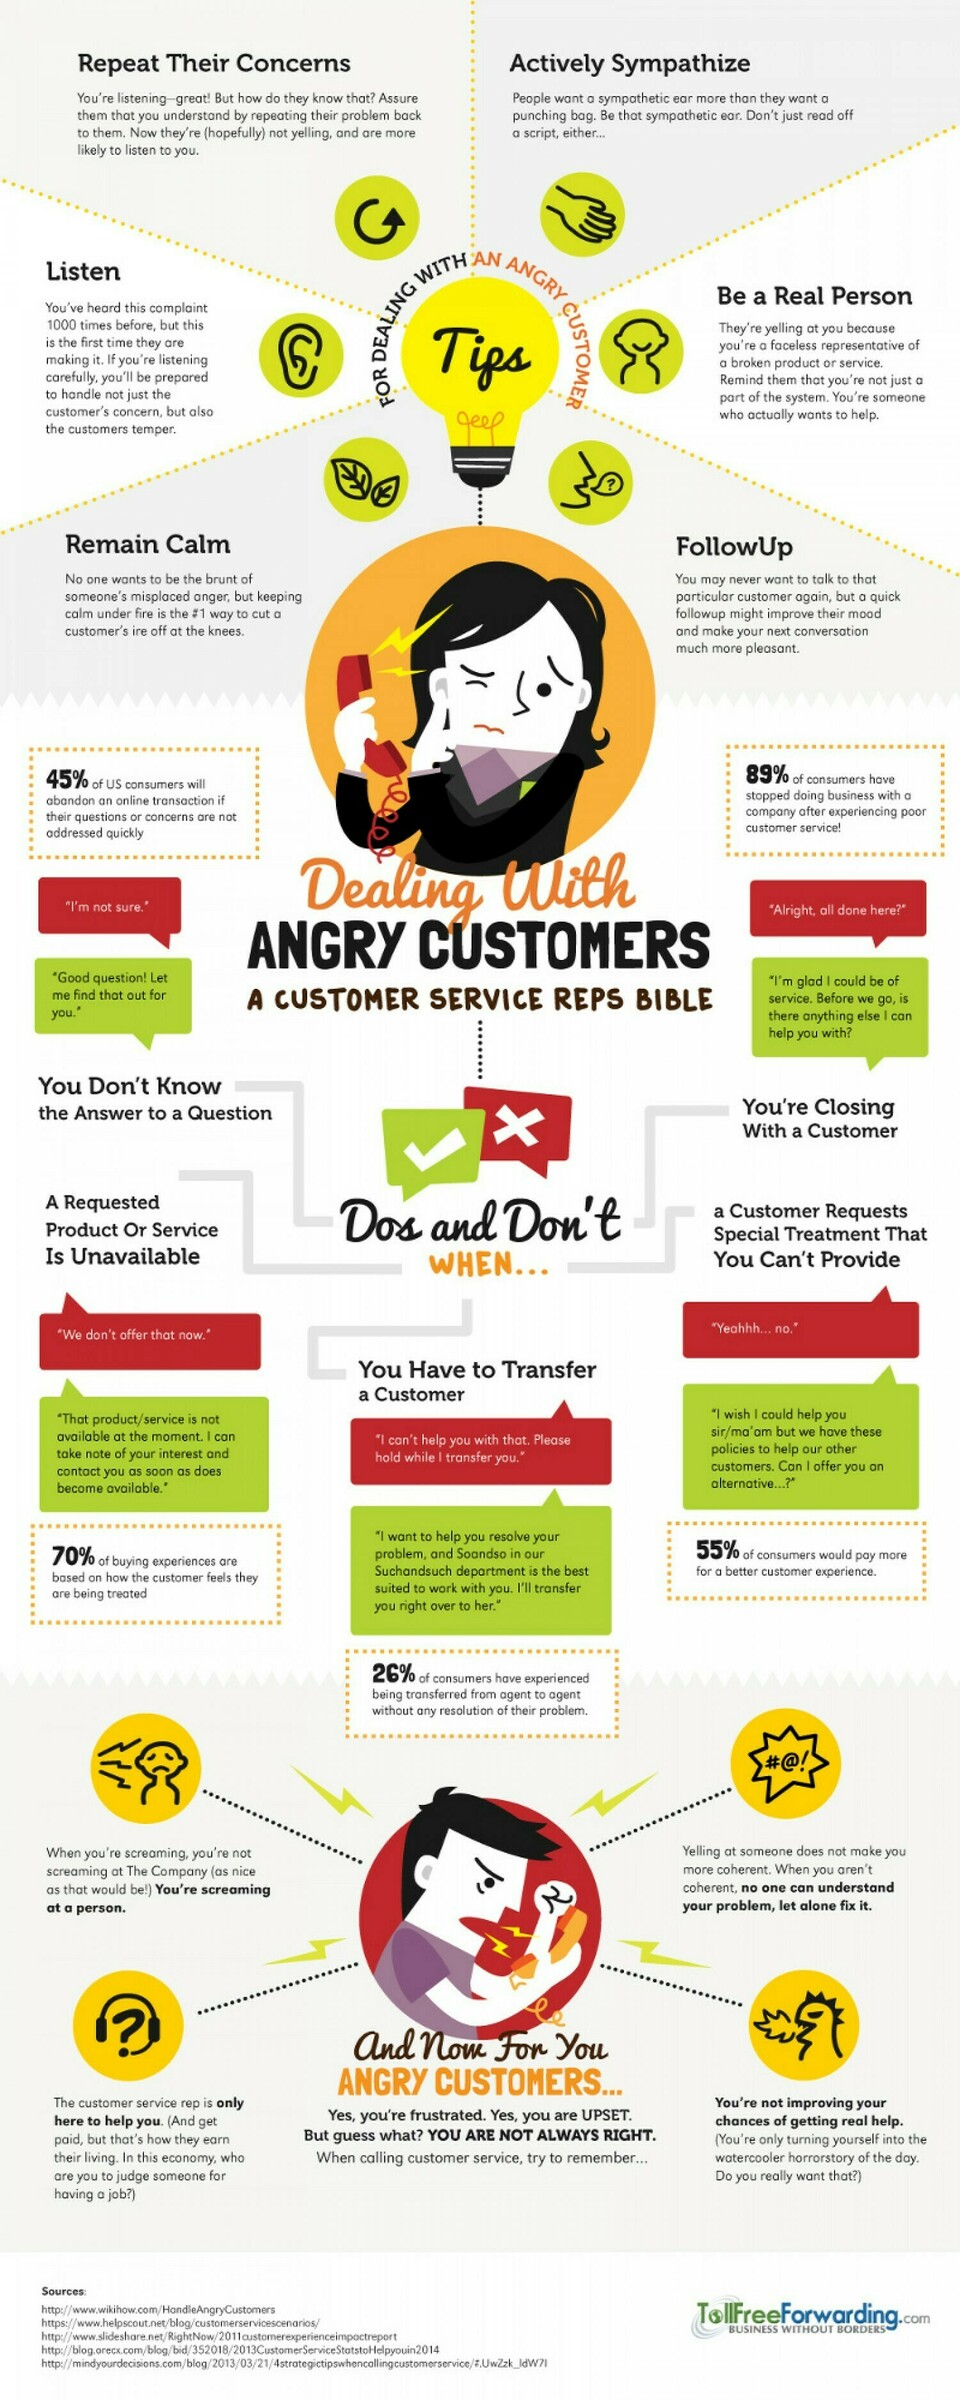 How to dealing with an angry customer 54e4876b580a8 w1500